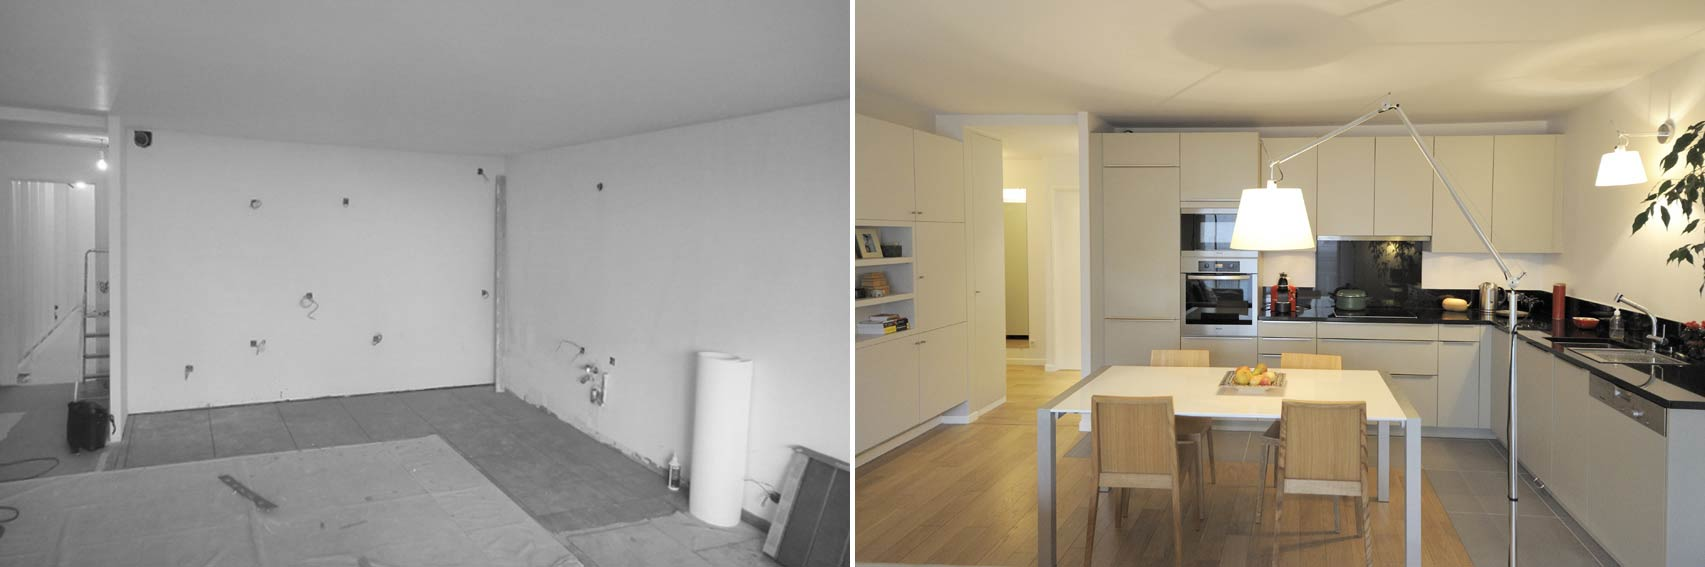 Avant apr s am nagement appartement 4 pi ces 90m2 for Architecte interieur nimes